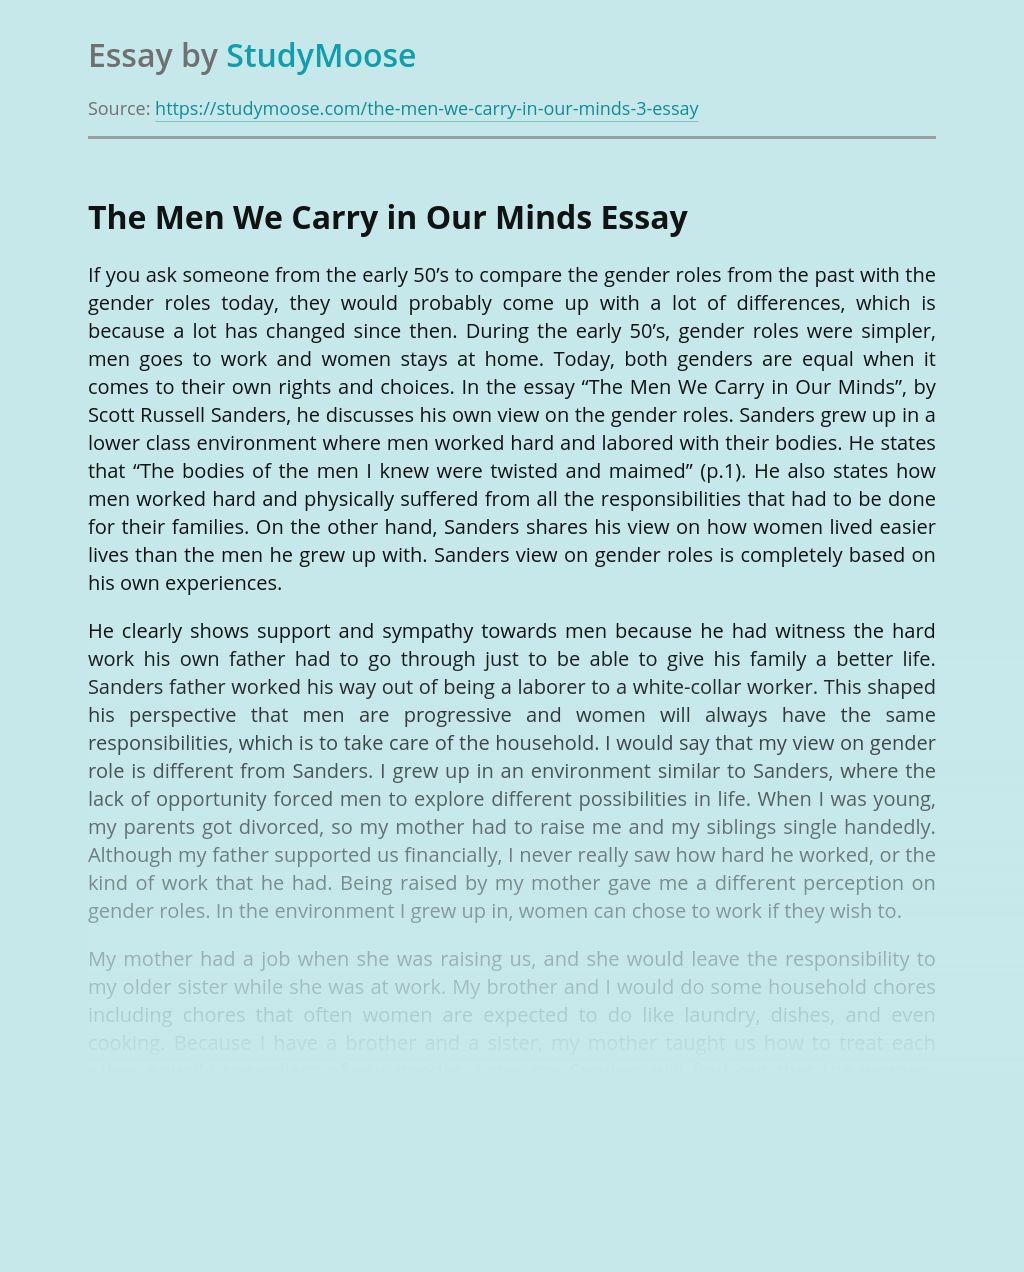 The Men We Carry in Our Minds by Scott Russell Sanders